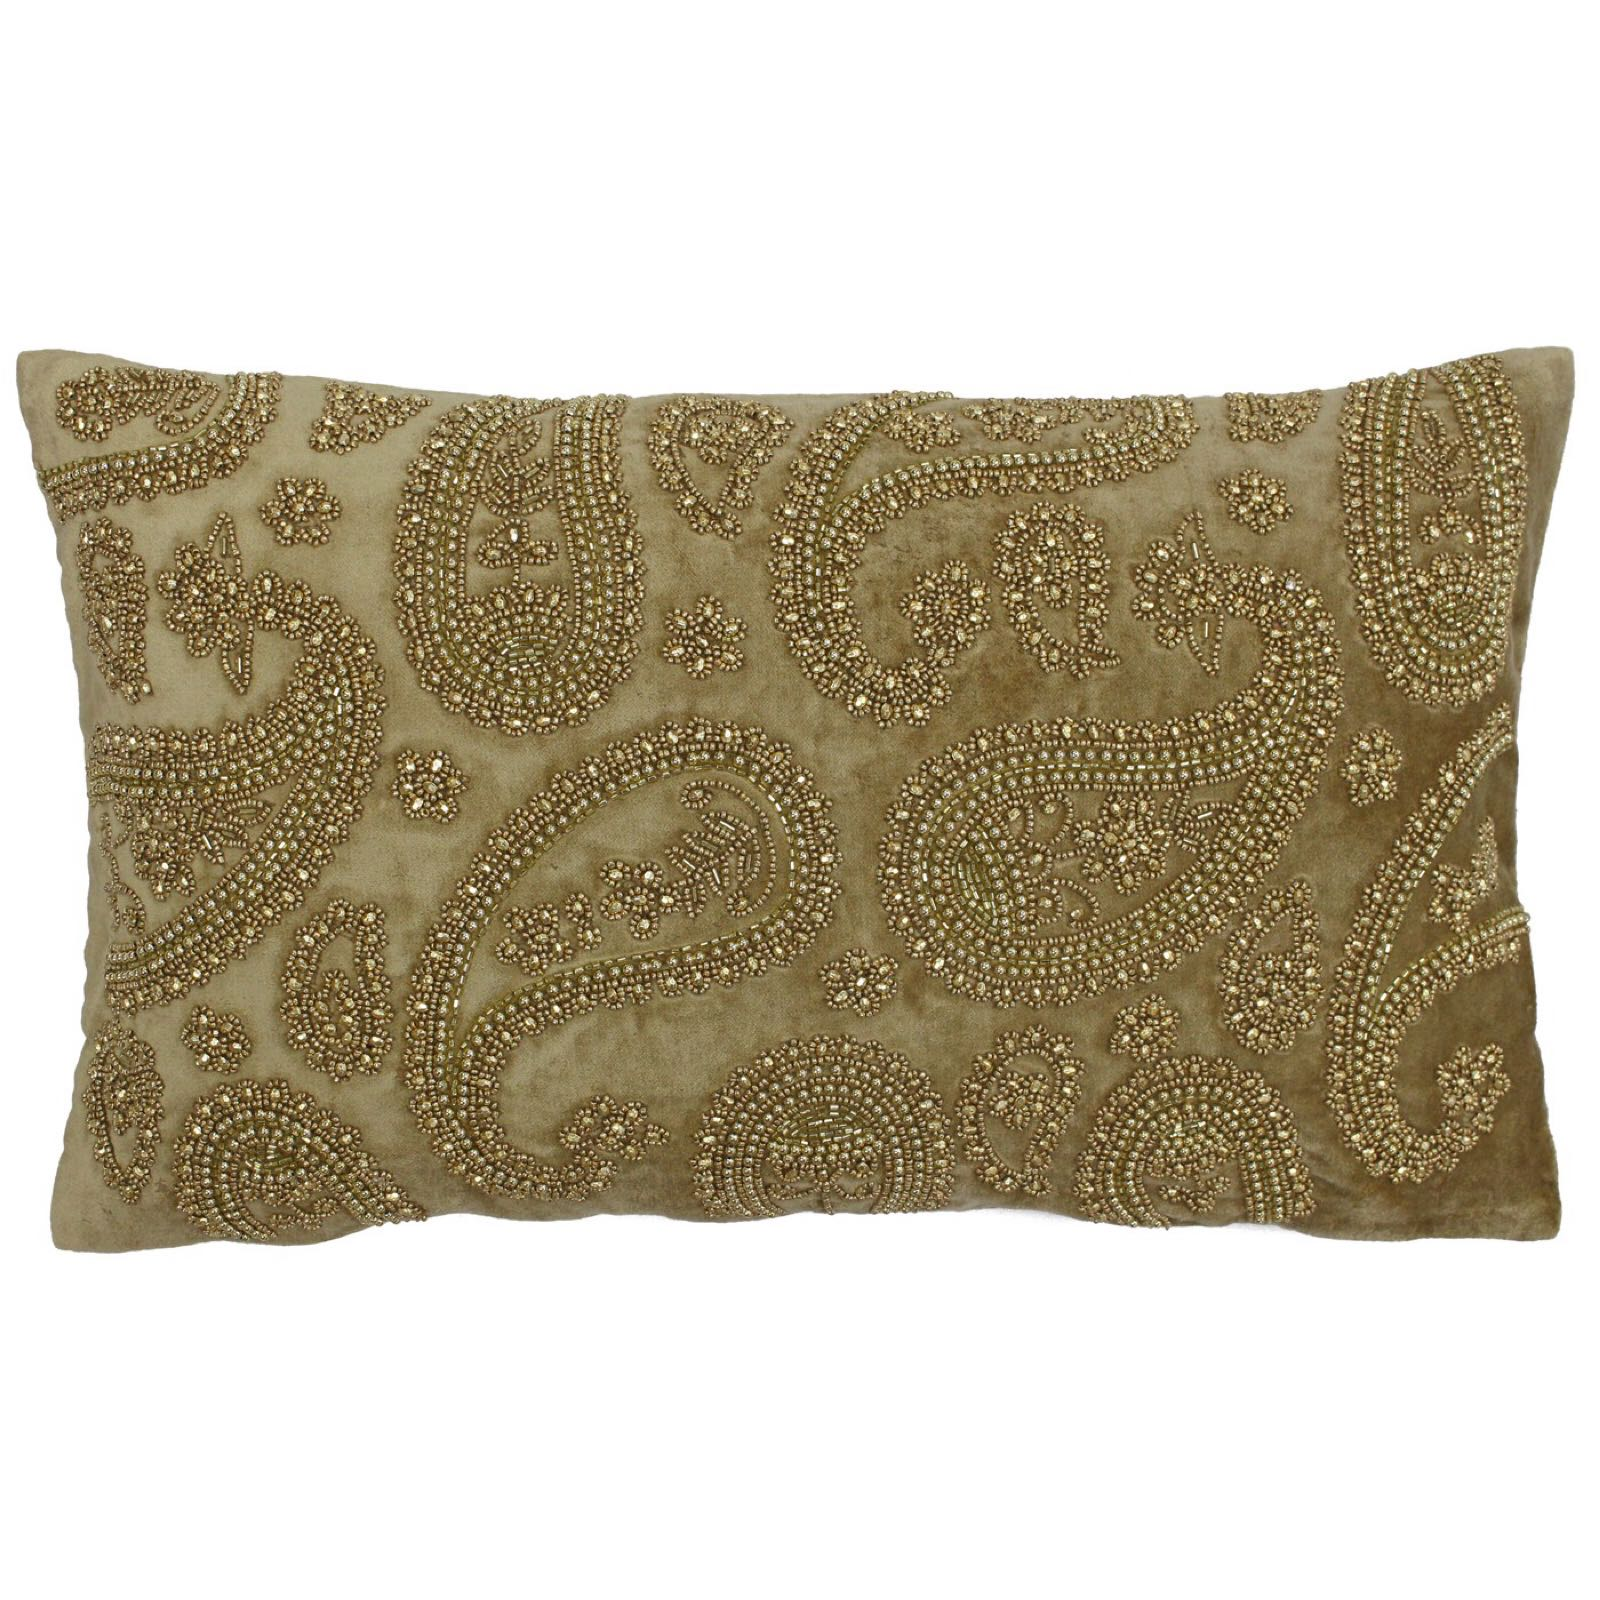 Cochin feather filled 30x50cm cushion in gold  was £35